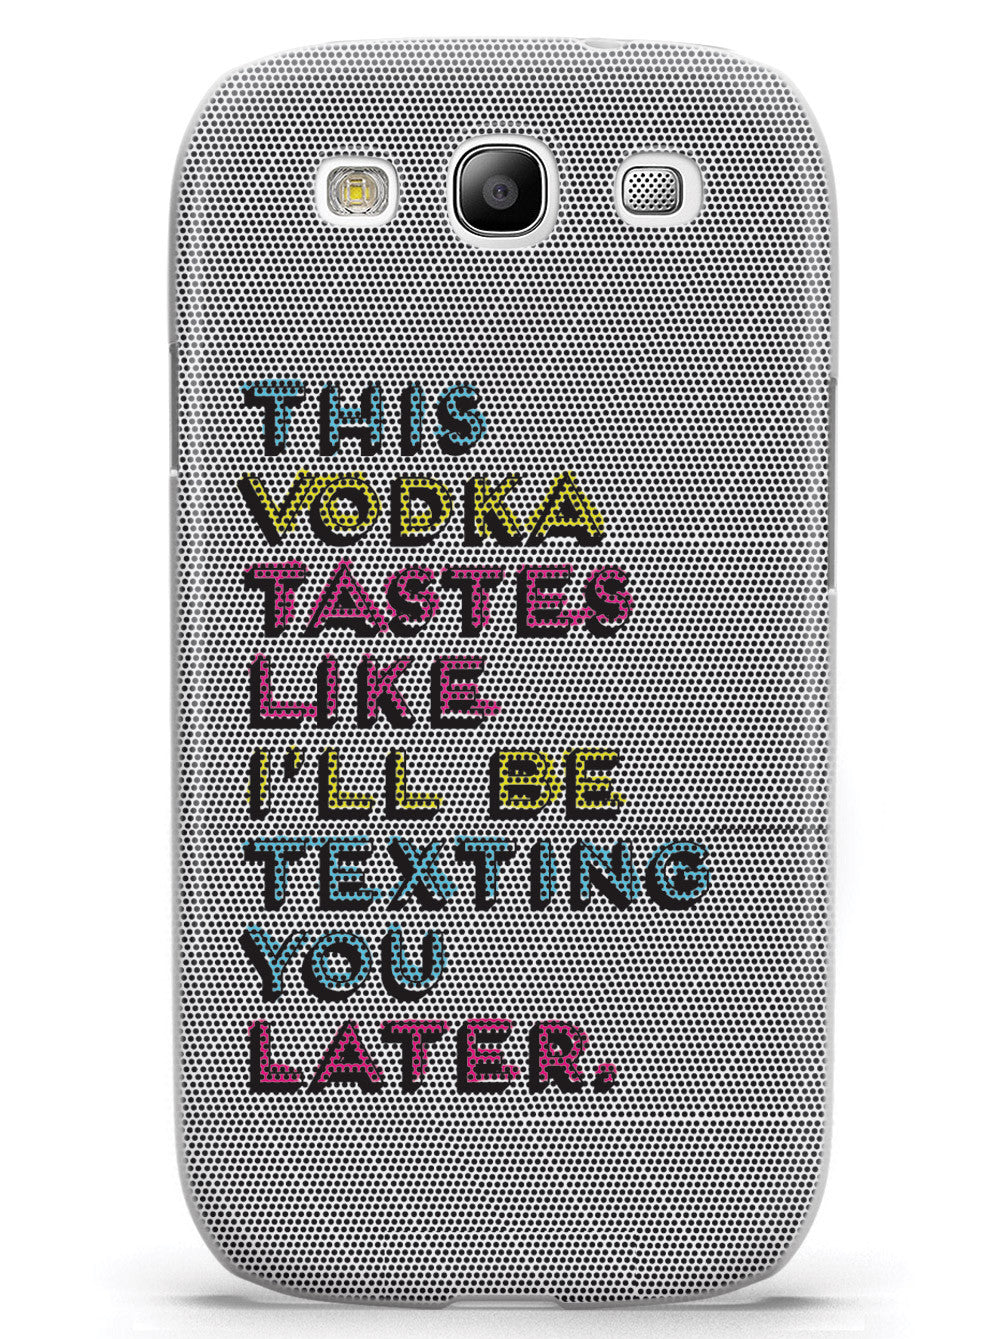 This Vodka Drinker's Funny Humor Case